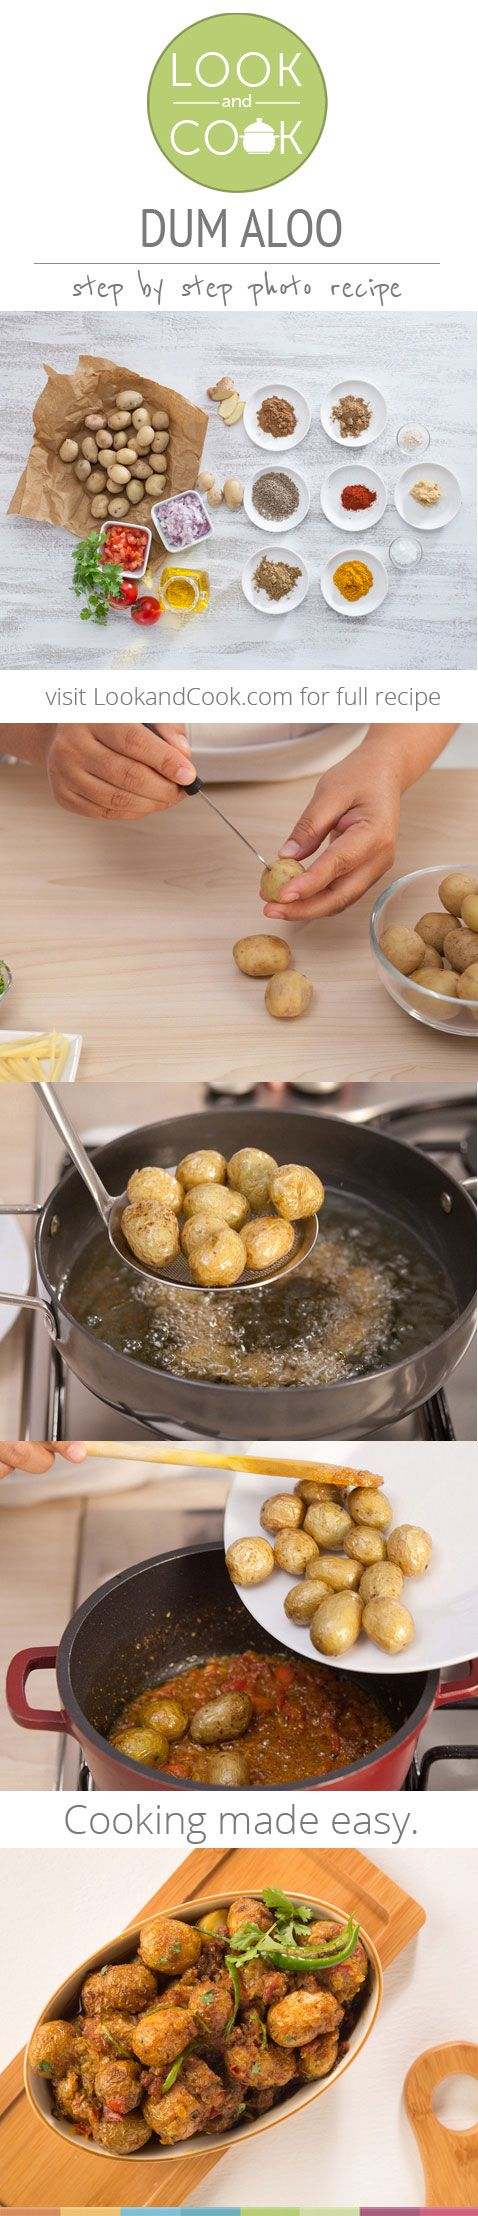 DUM ALOO RECIPE Dum Aloo(#LC14027):Dum Aloo is a Kashmiri- style dish where potatoes are deep fried, then cooked slowly at a low flame in a succulent creamy gravy